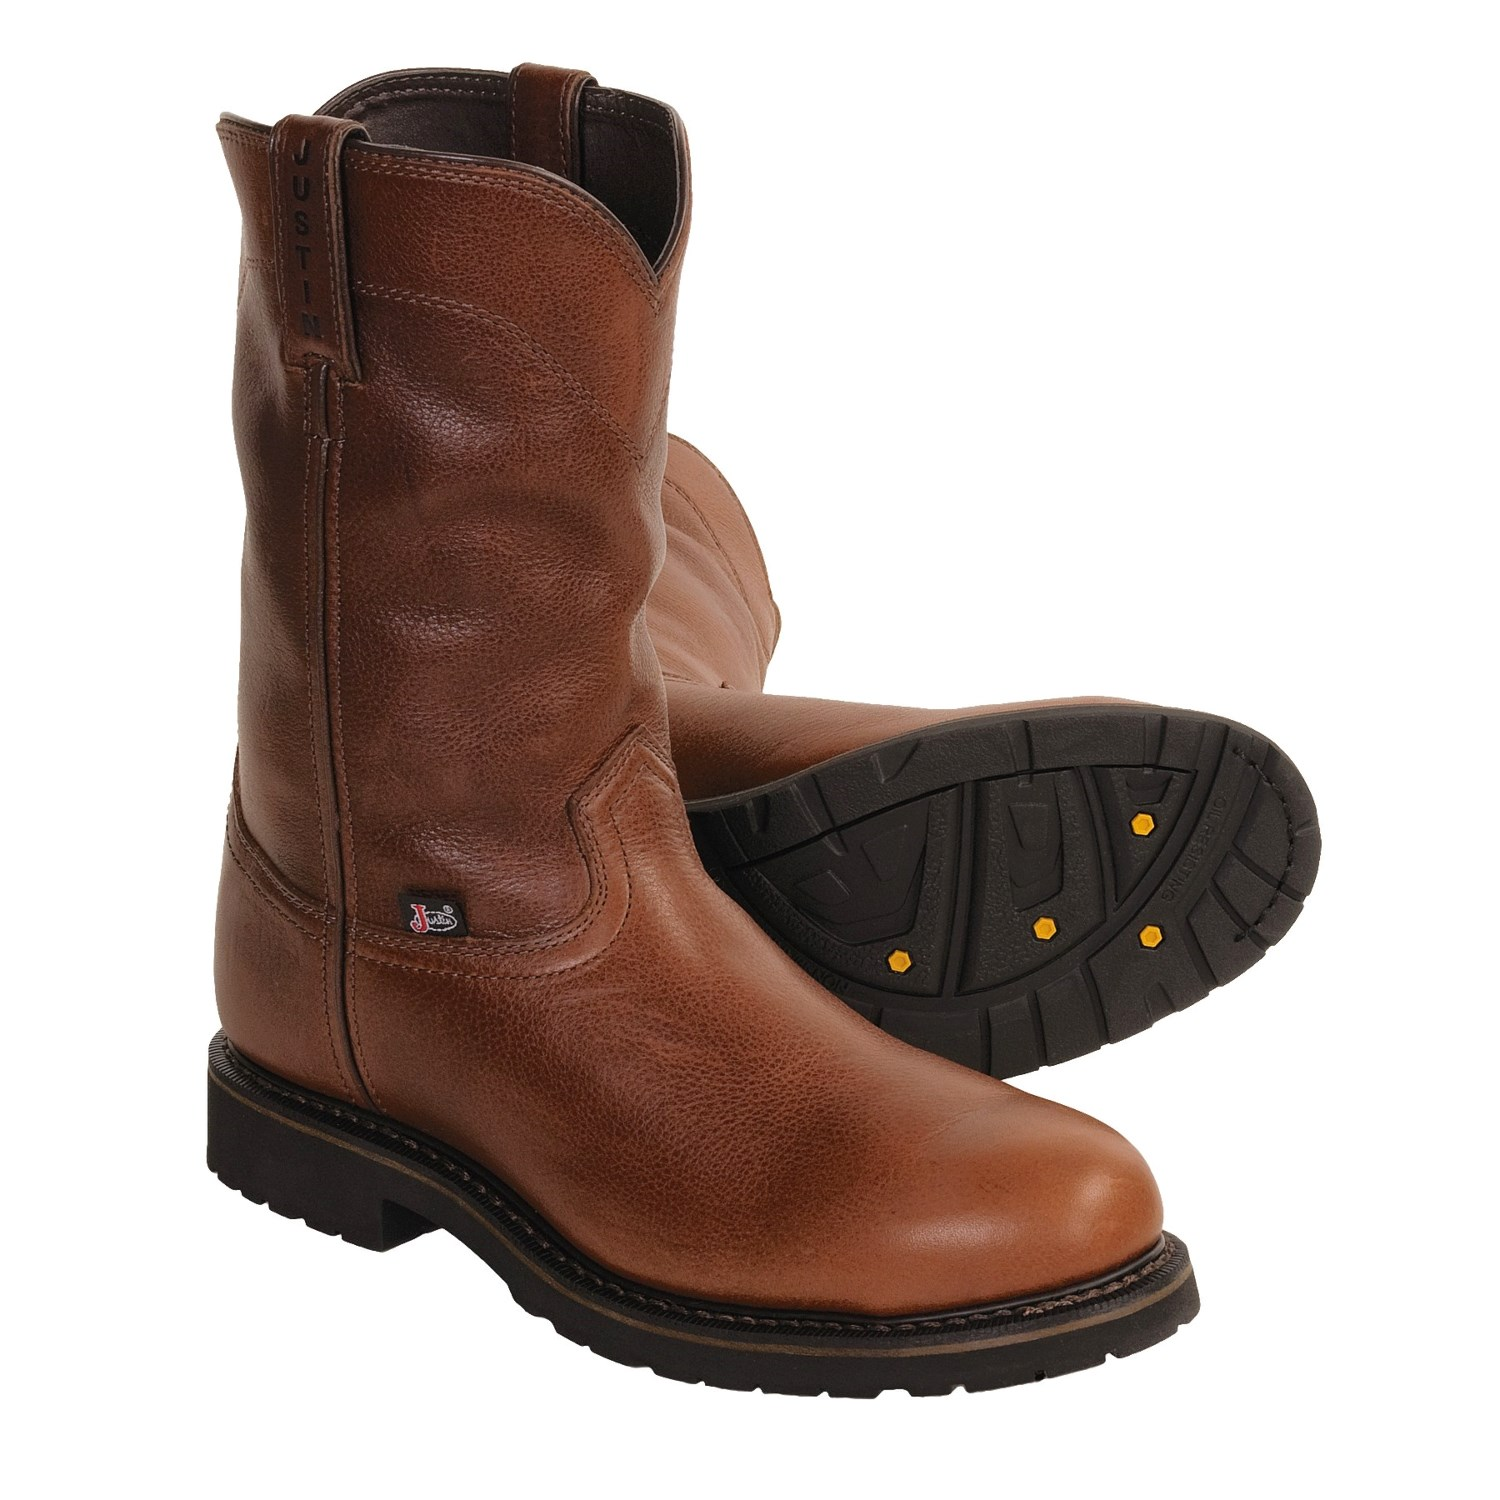 Justin Boots Wellington Work For Men 2817R Save 36